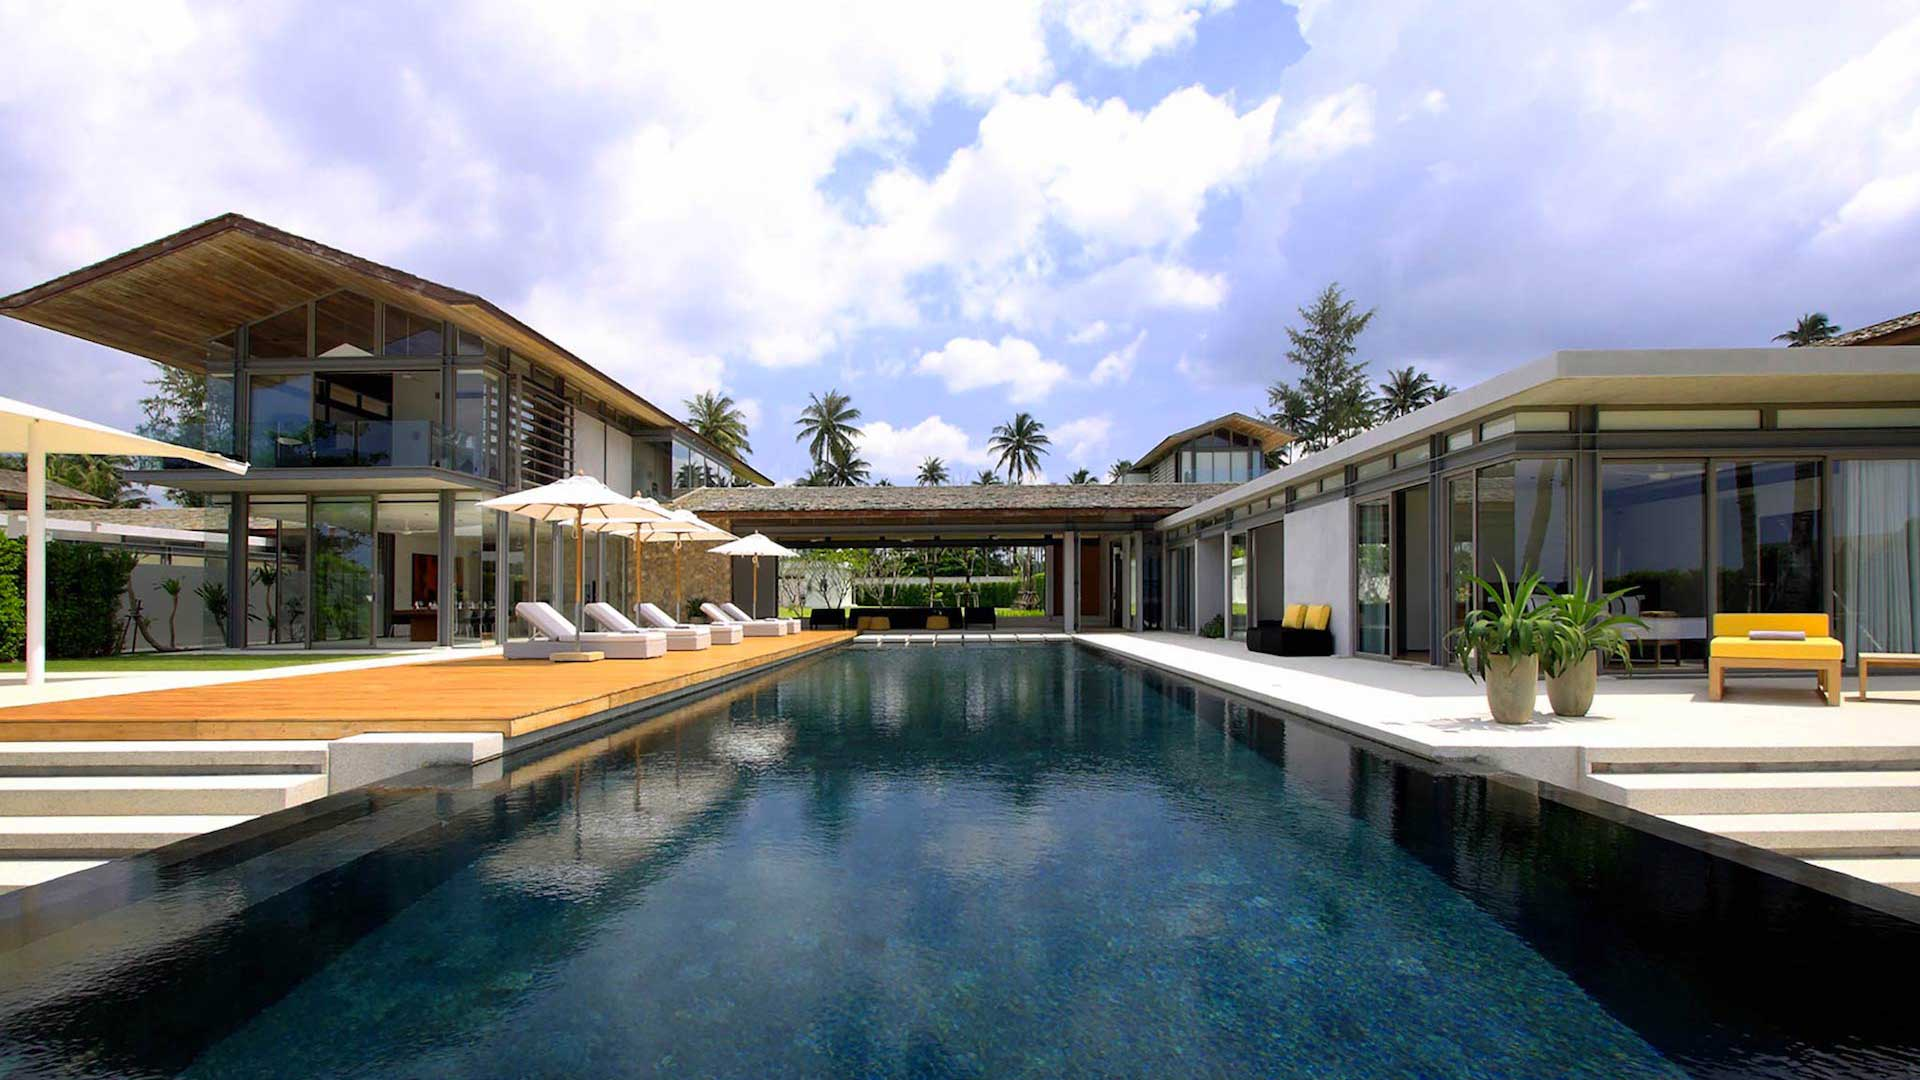 Villa Sava Beach Villas - Amarelo, Location à Phuket